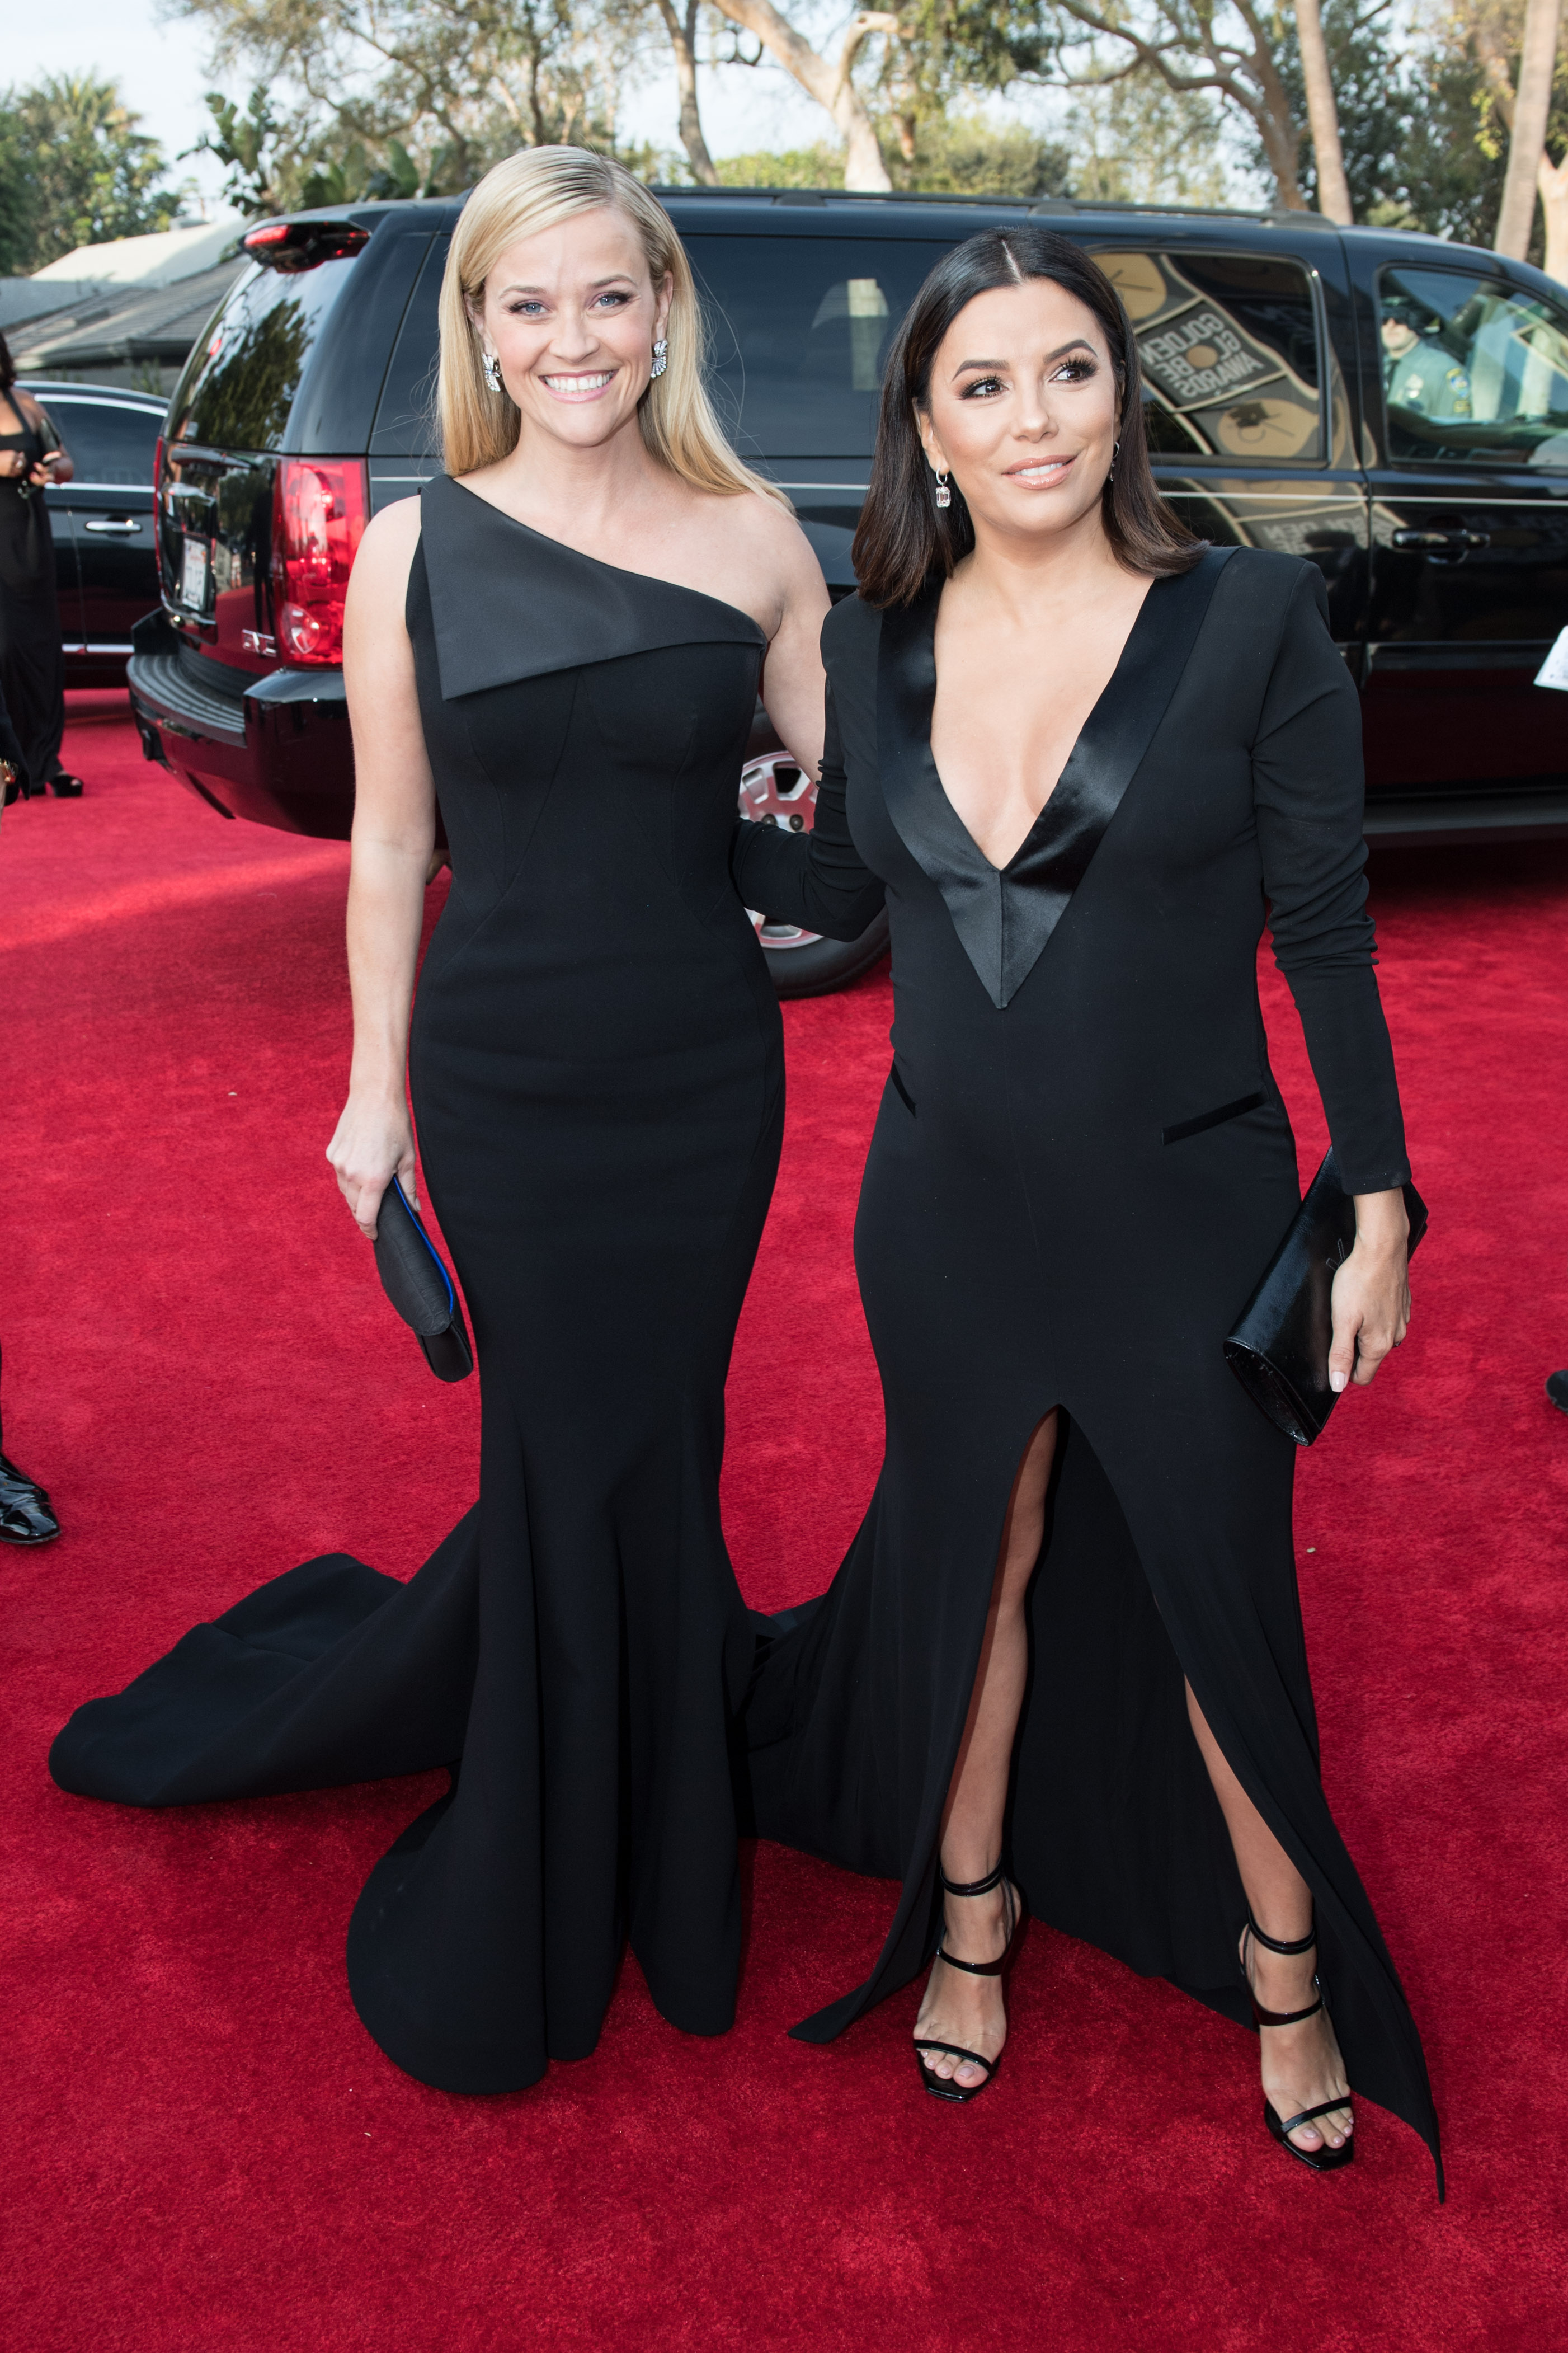 "Nominated for BEST PERFORMANCE BY AN ACTRESS IN A LIMITED SERIES OR A MOTION PICTURE MADE FOR TELEVISION for her role in ""Big Little Lies,"" actress Reese Witherspoon and Eva Longoria arrive at the 75th Annual Golden Globe Awards at the Beverly Hilton in Beverly Hills, CA on Sunday, January 7, 2018."